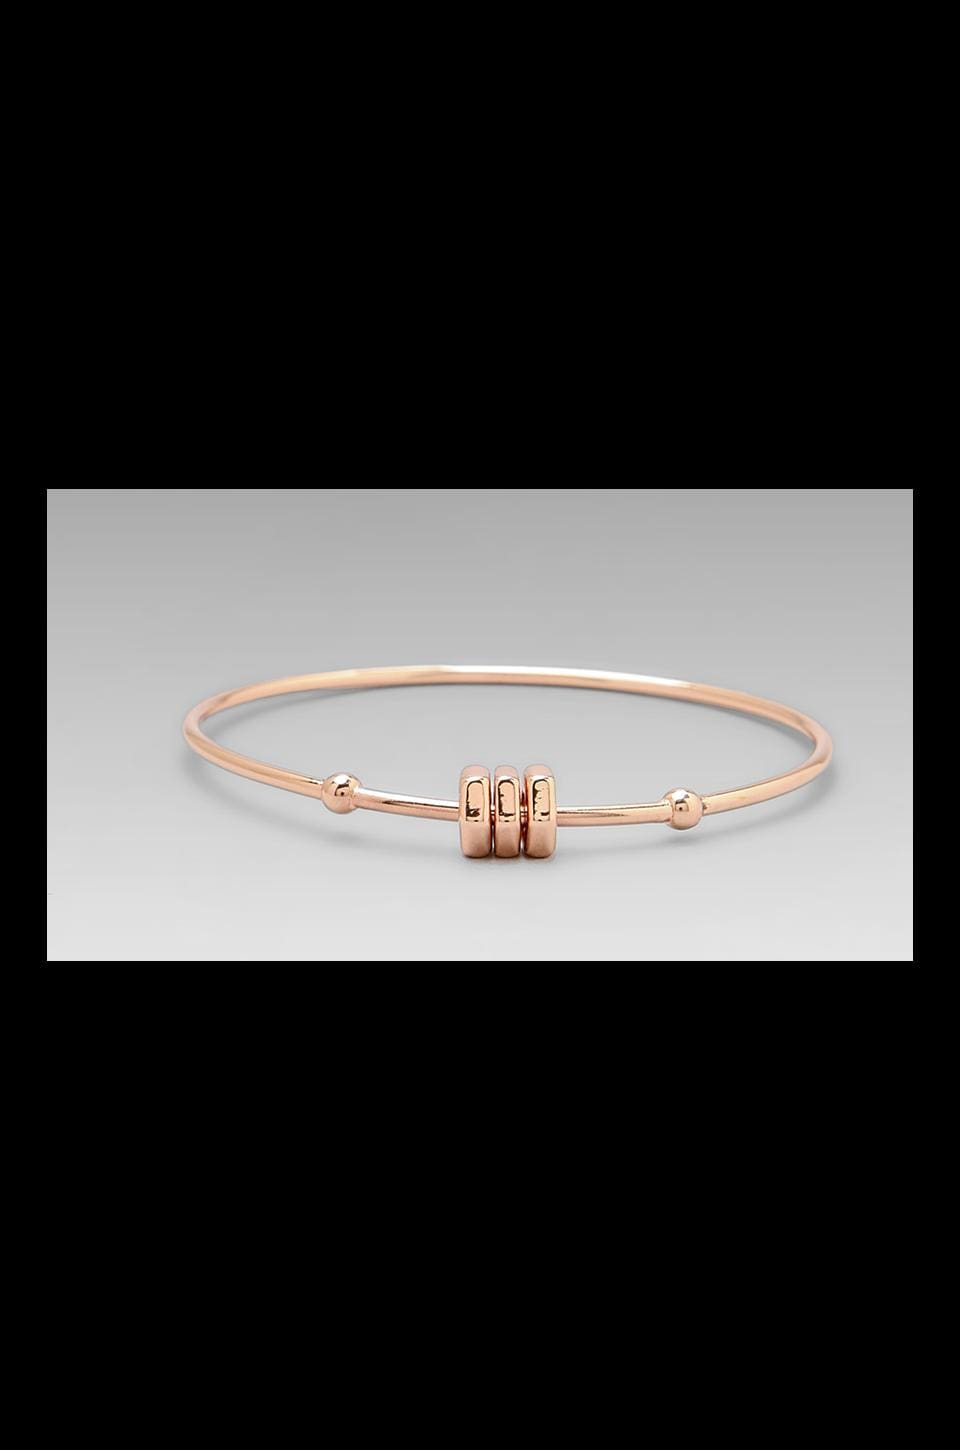 Marc by Marc Jacobs Bolt Tiny Bangle in Rose Gold